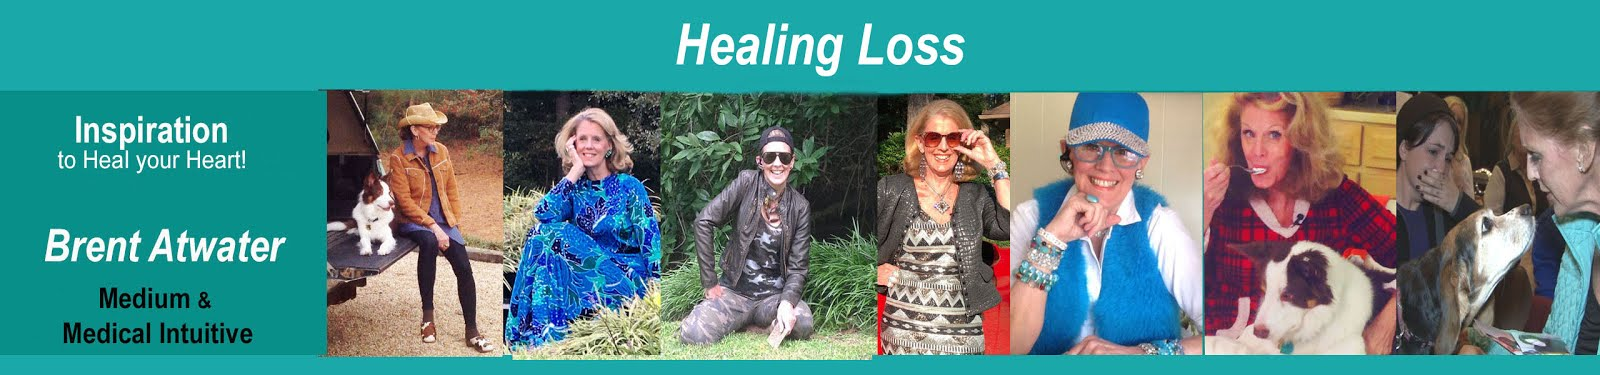 Healing Loss with Brent Atwater